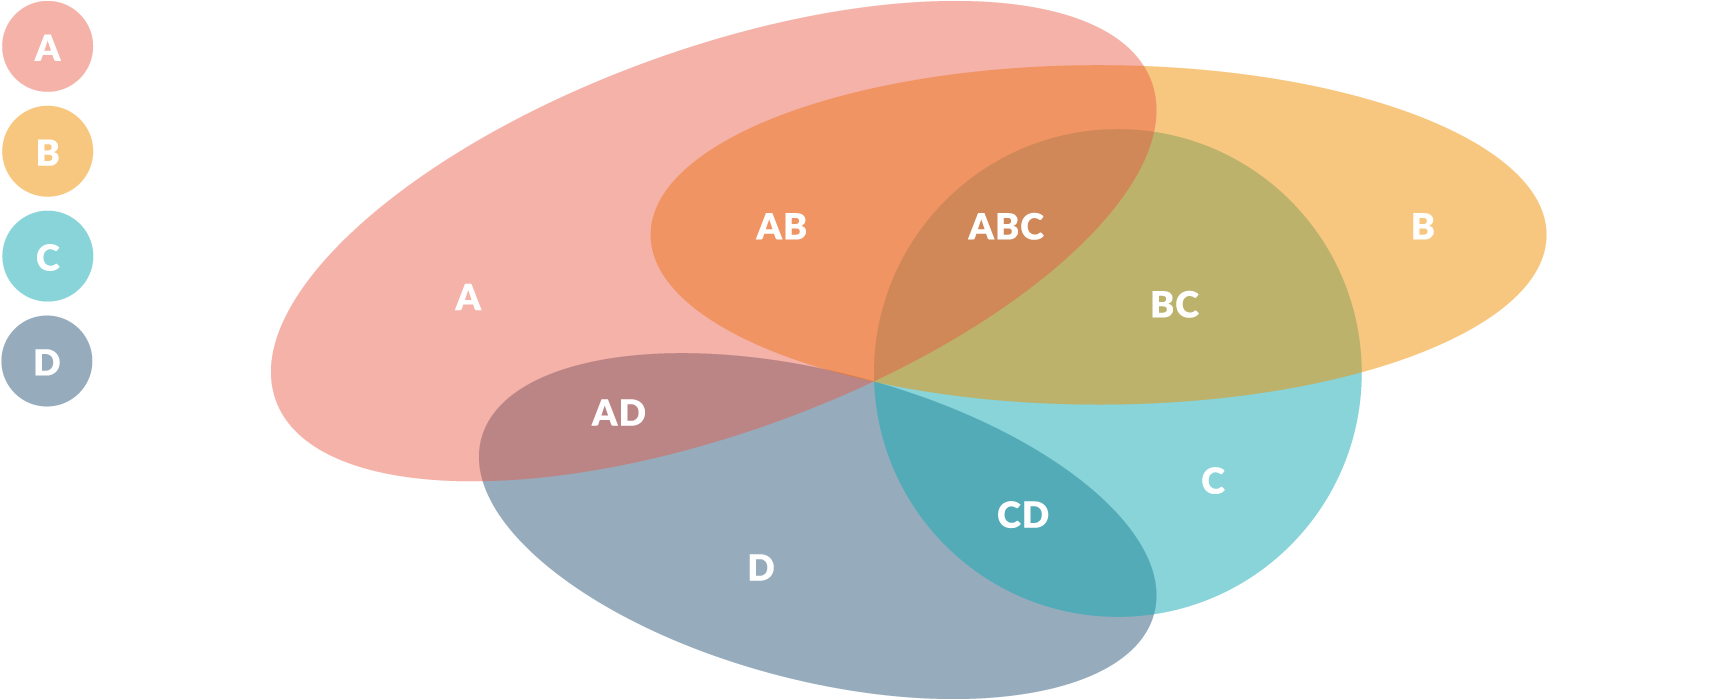 Examples Drawio Program To Draw Circuit Venn Diagrams Show The Possible Logical Relationships Between Two Or More Groups Of Things Sets They Are Often Used Organize Elements And